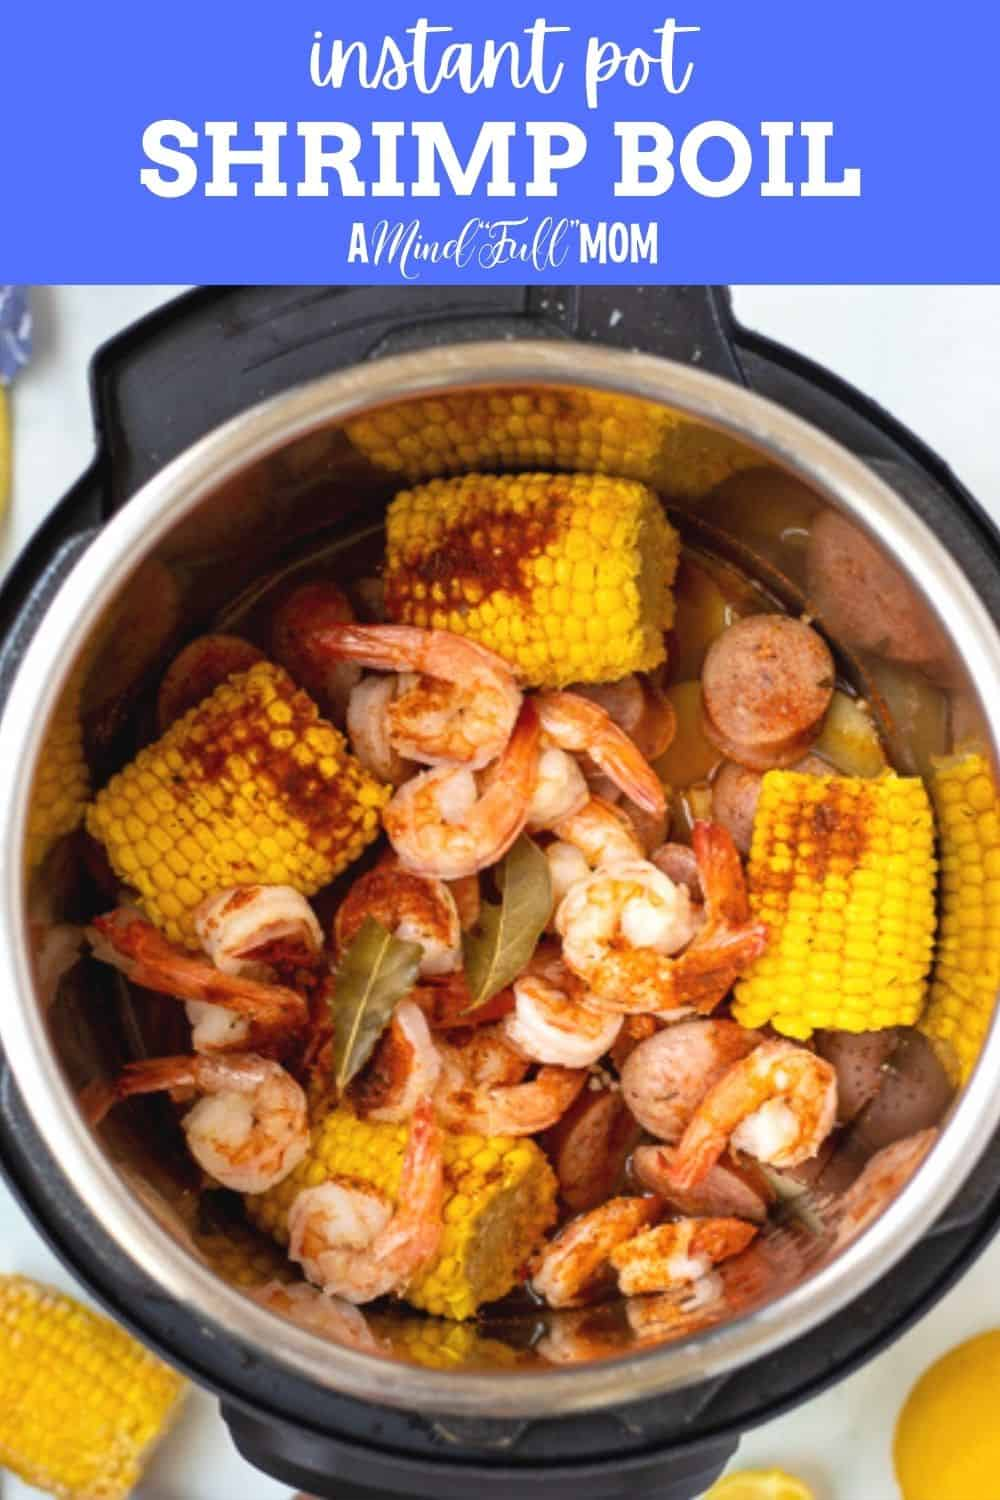 Instant Pot Shrimp Boil is not only an easier and faster way to prepare a classic shrimp boil but the result is perfection! Made with red potatoes, smoked sausage, corn, shrimp, and the perfect combination of seasonings, this Shrimp Boil is a perfect recipe to entertain with or to enjoy for a family meal.